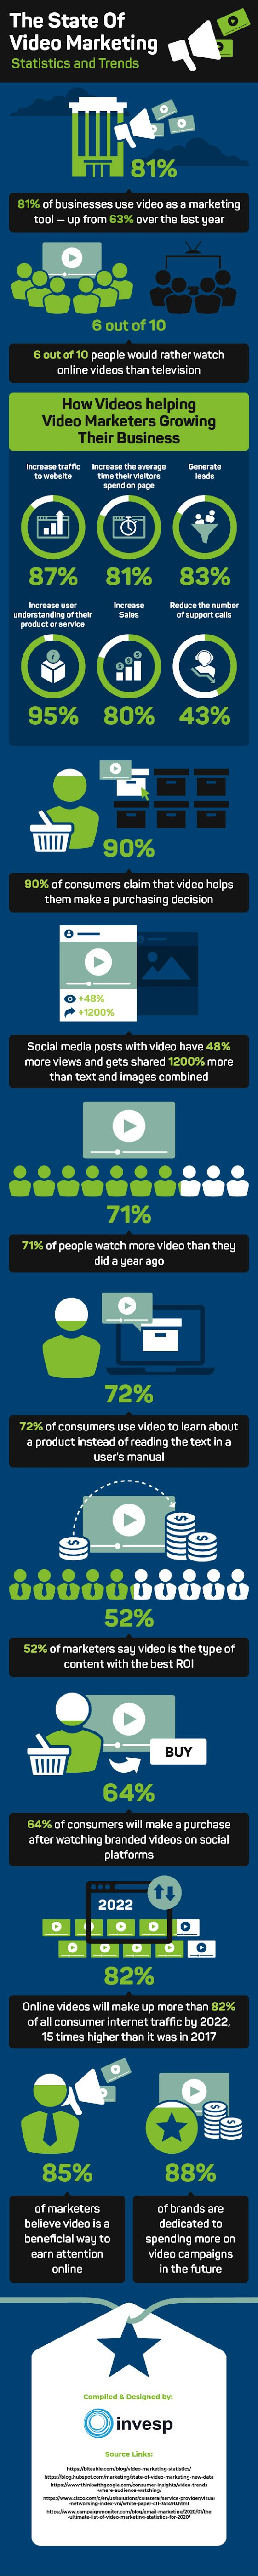 The State Of Video Marketing Statistics and Trends #infographic #Video Marketing #Marketing